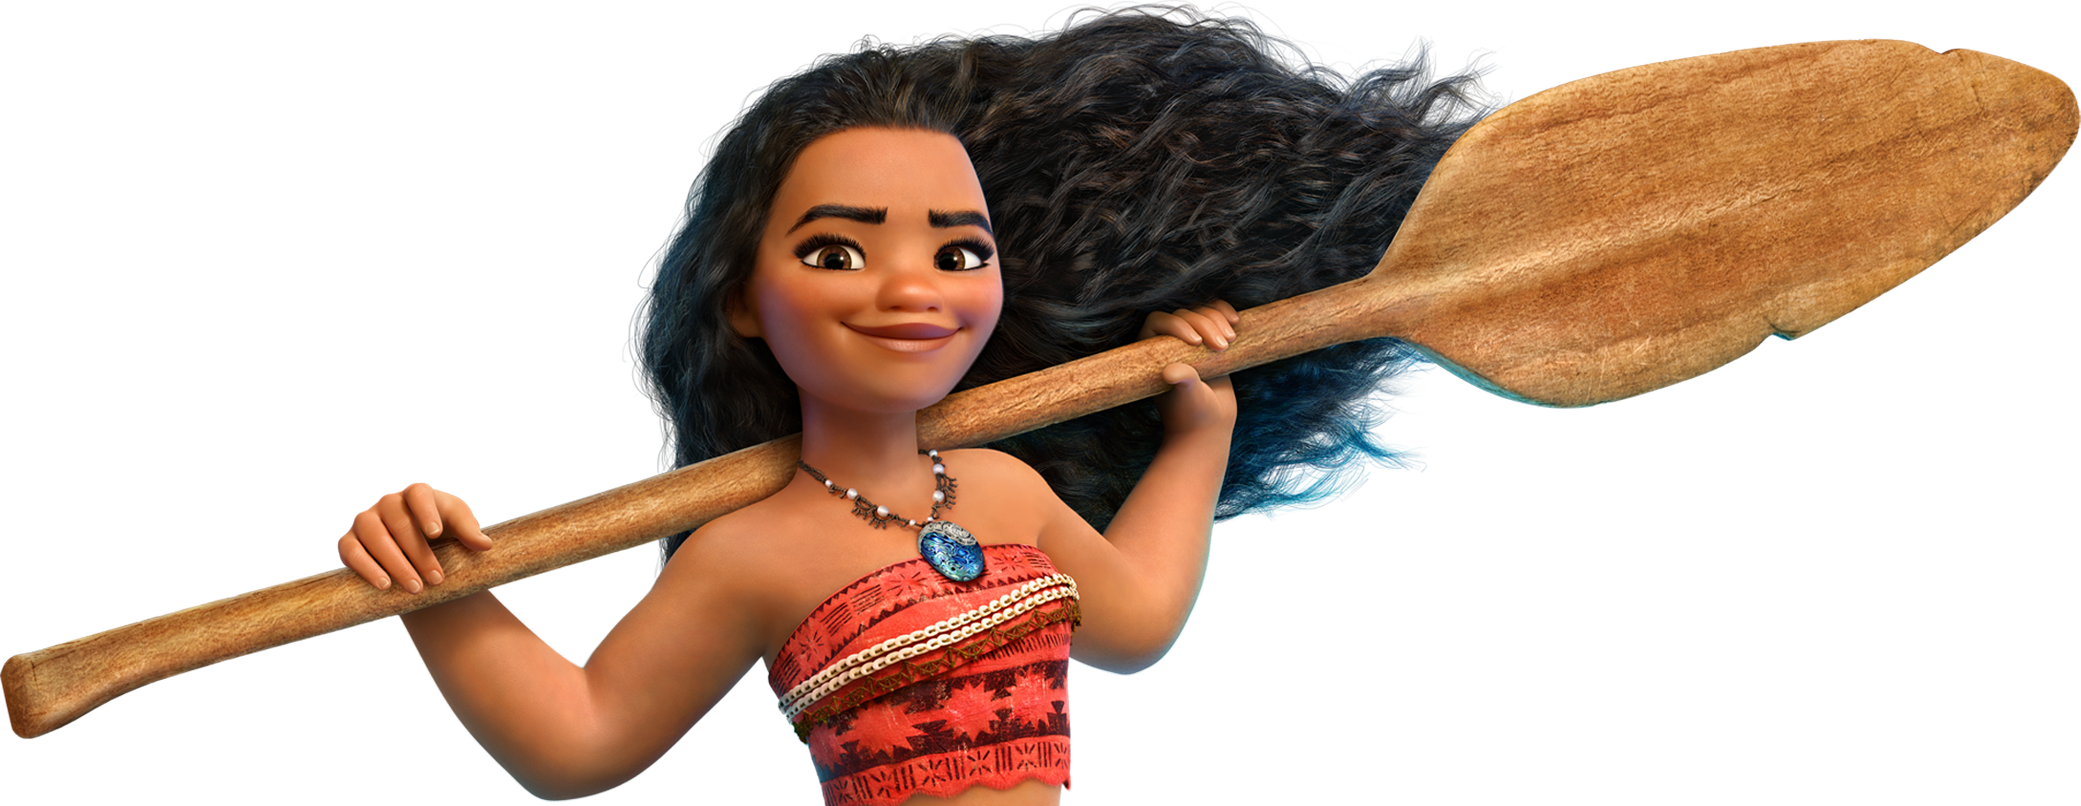 Moana transparent background clipart images gallery for free.